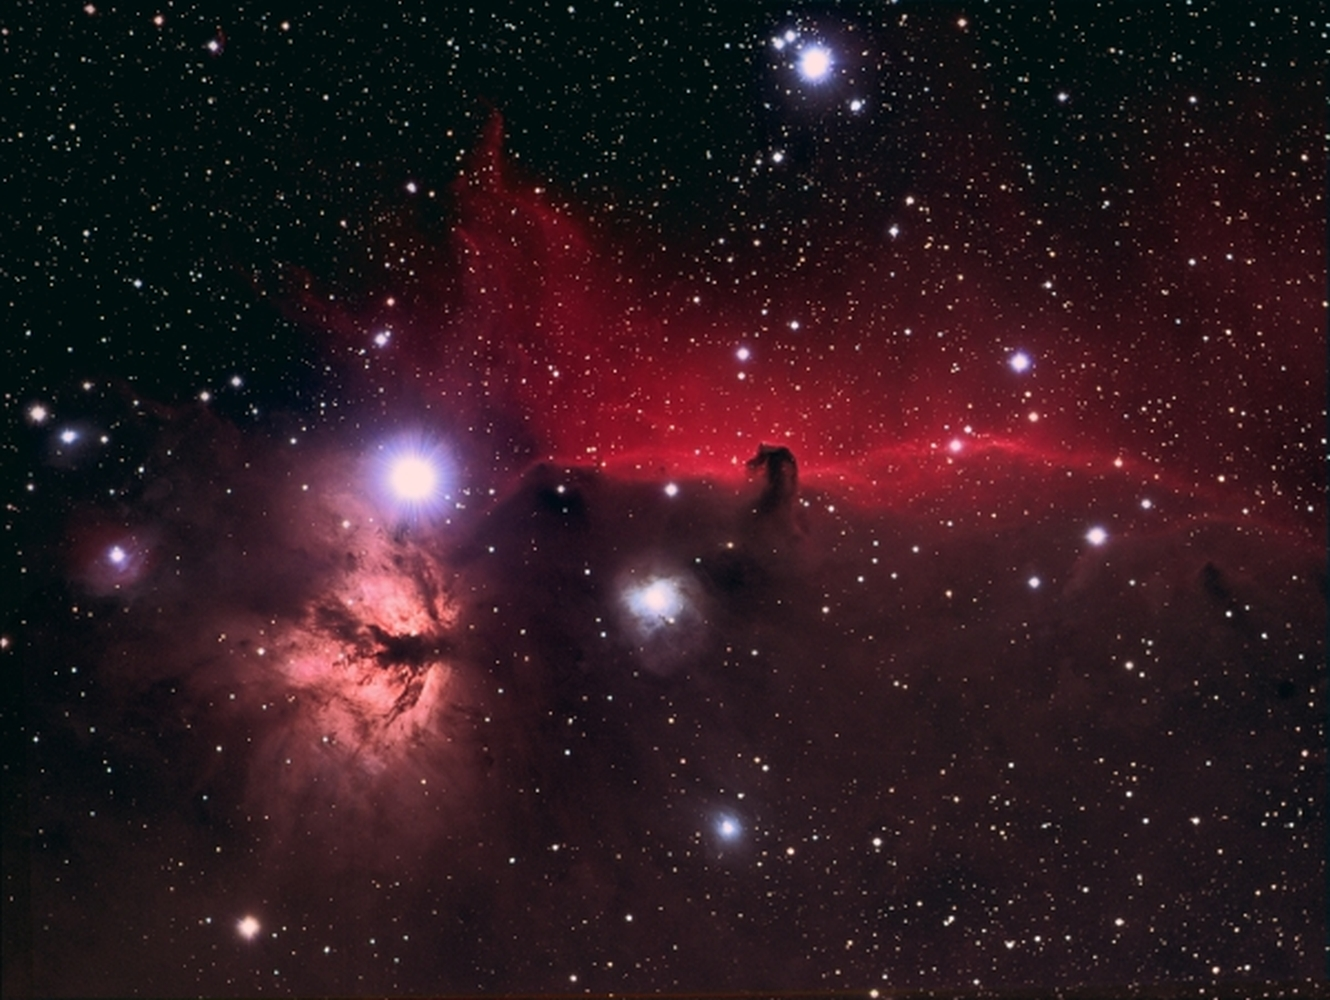 B33 Horsehead Nebula from BMV Observatories